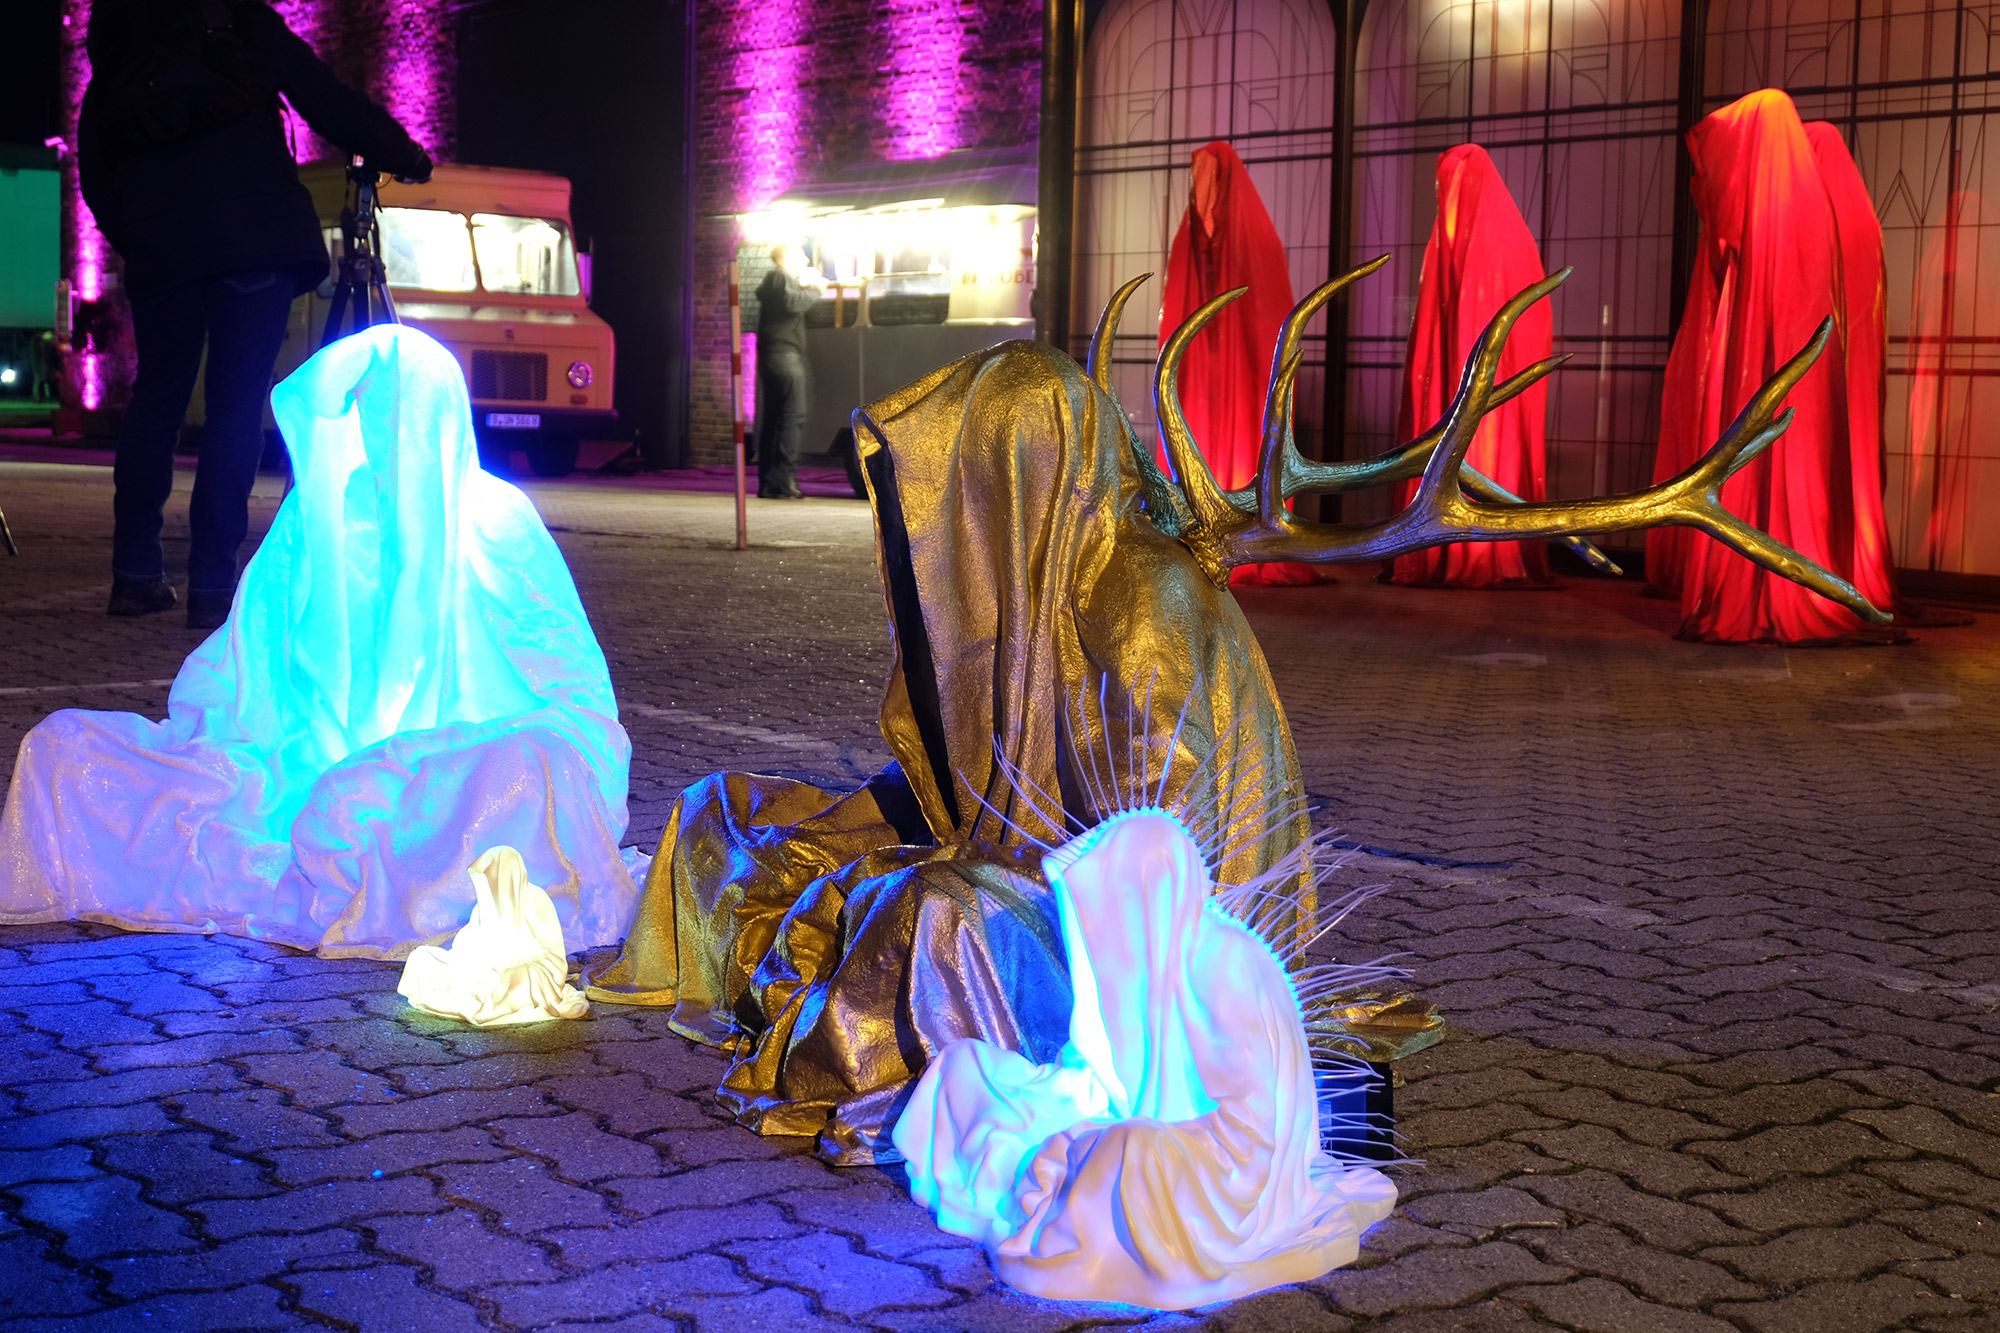 berlin-light-art-photographie-modern-fine-art-manfred-kielnhofer-guardians-of-time-8777